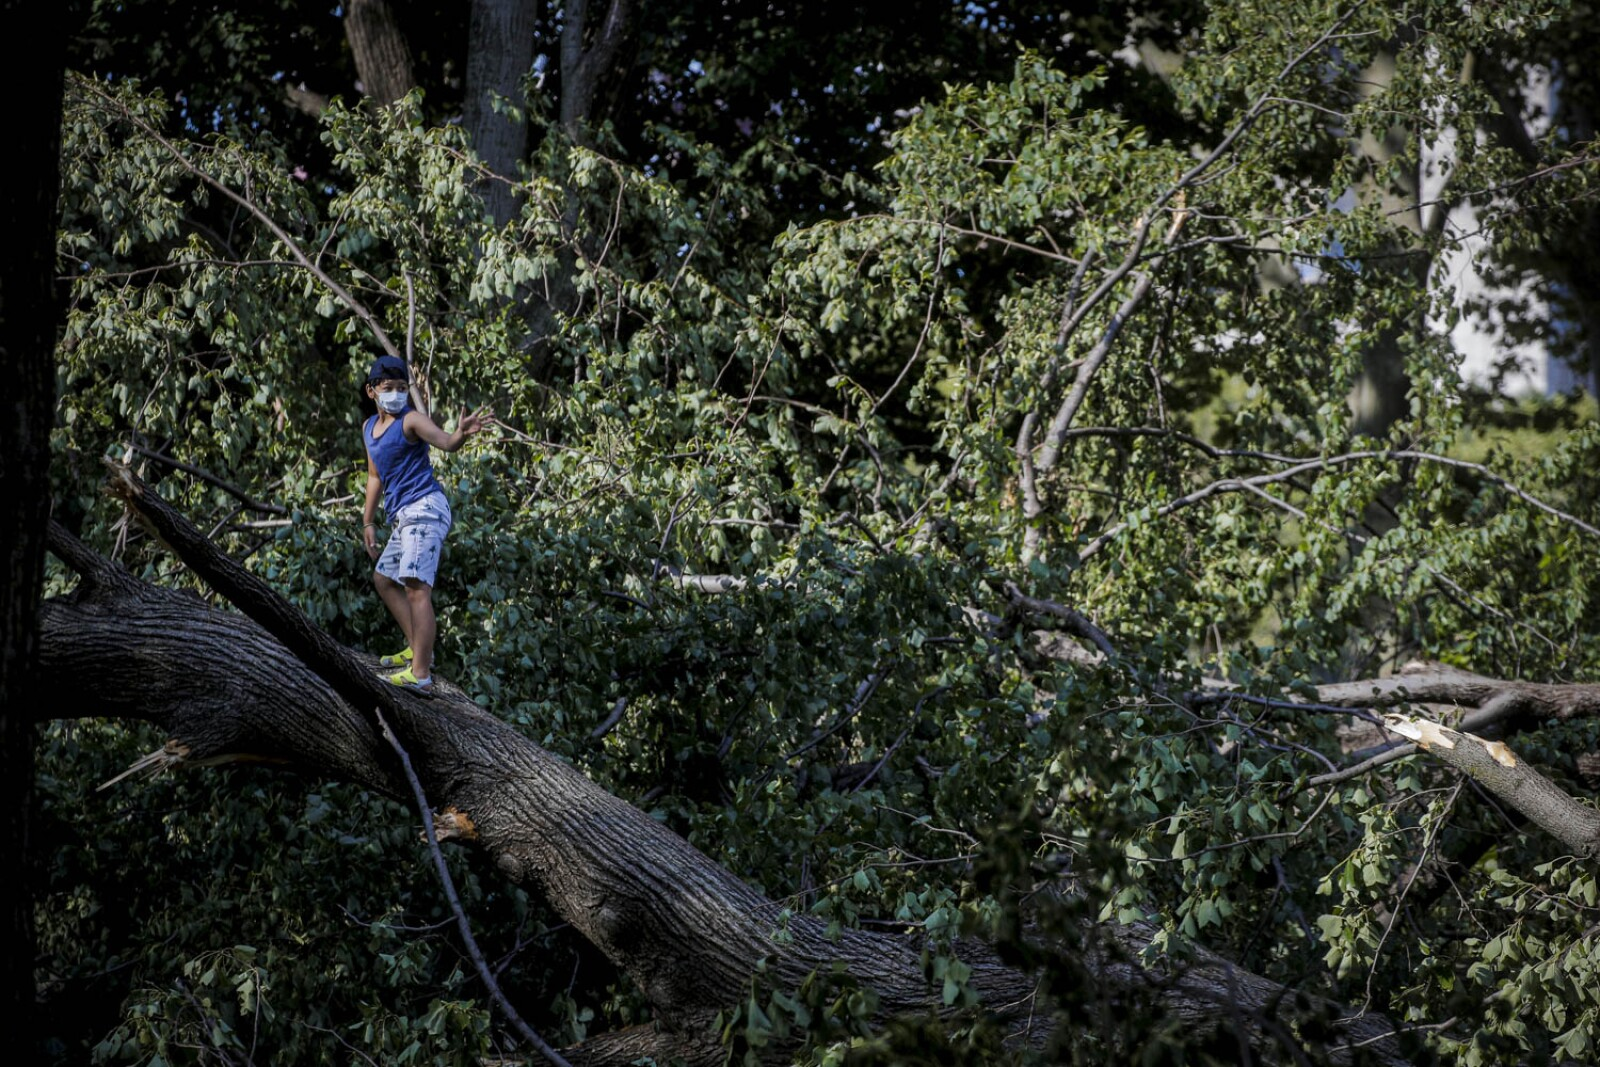 A boy climbs on downed trees in the aftermath of Tropical Storm Isaias in Astoria Park in Queens, New York